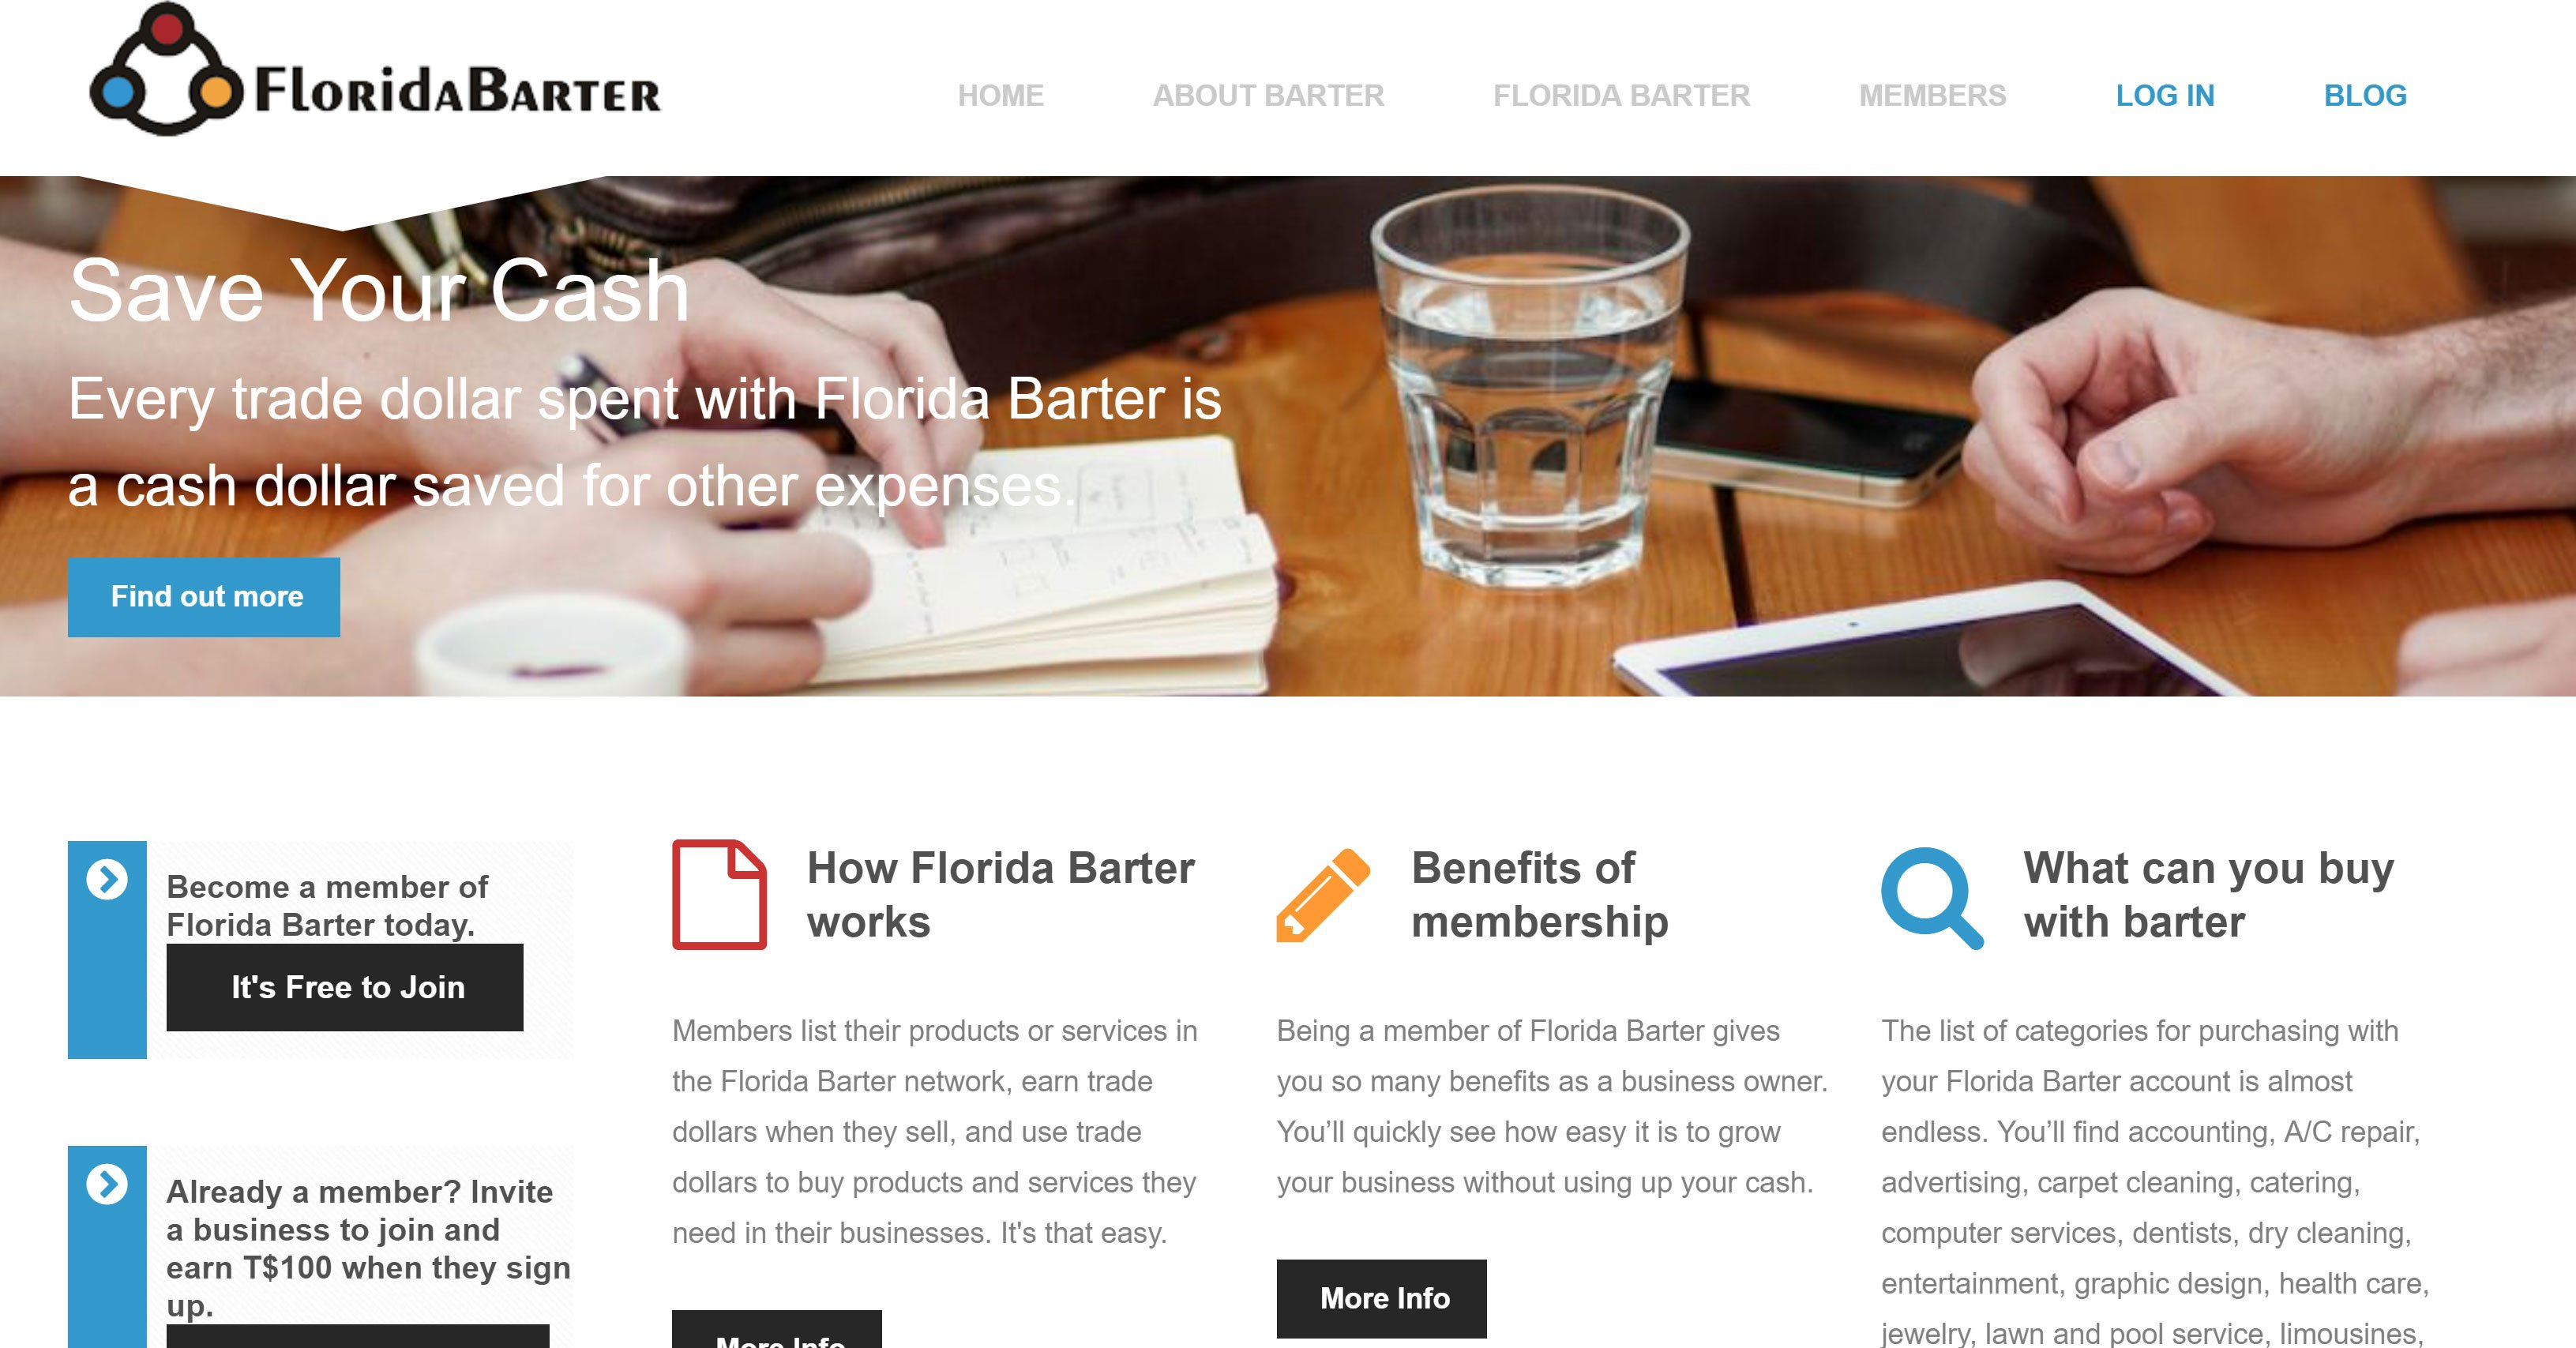 Florida Barter Welcomes Online Presence Manager!